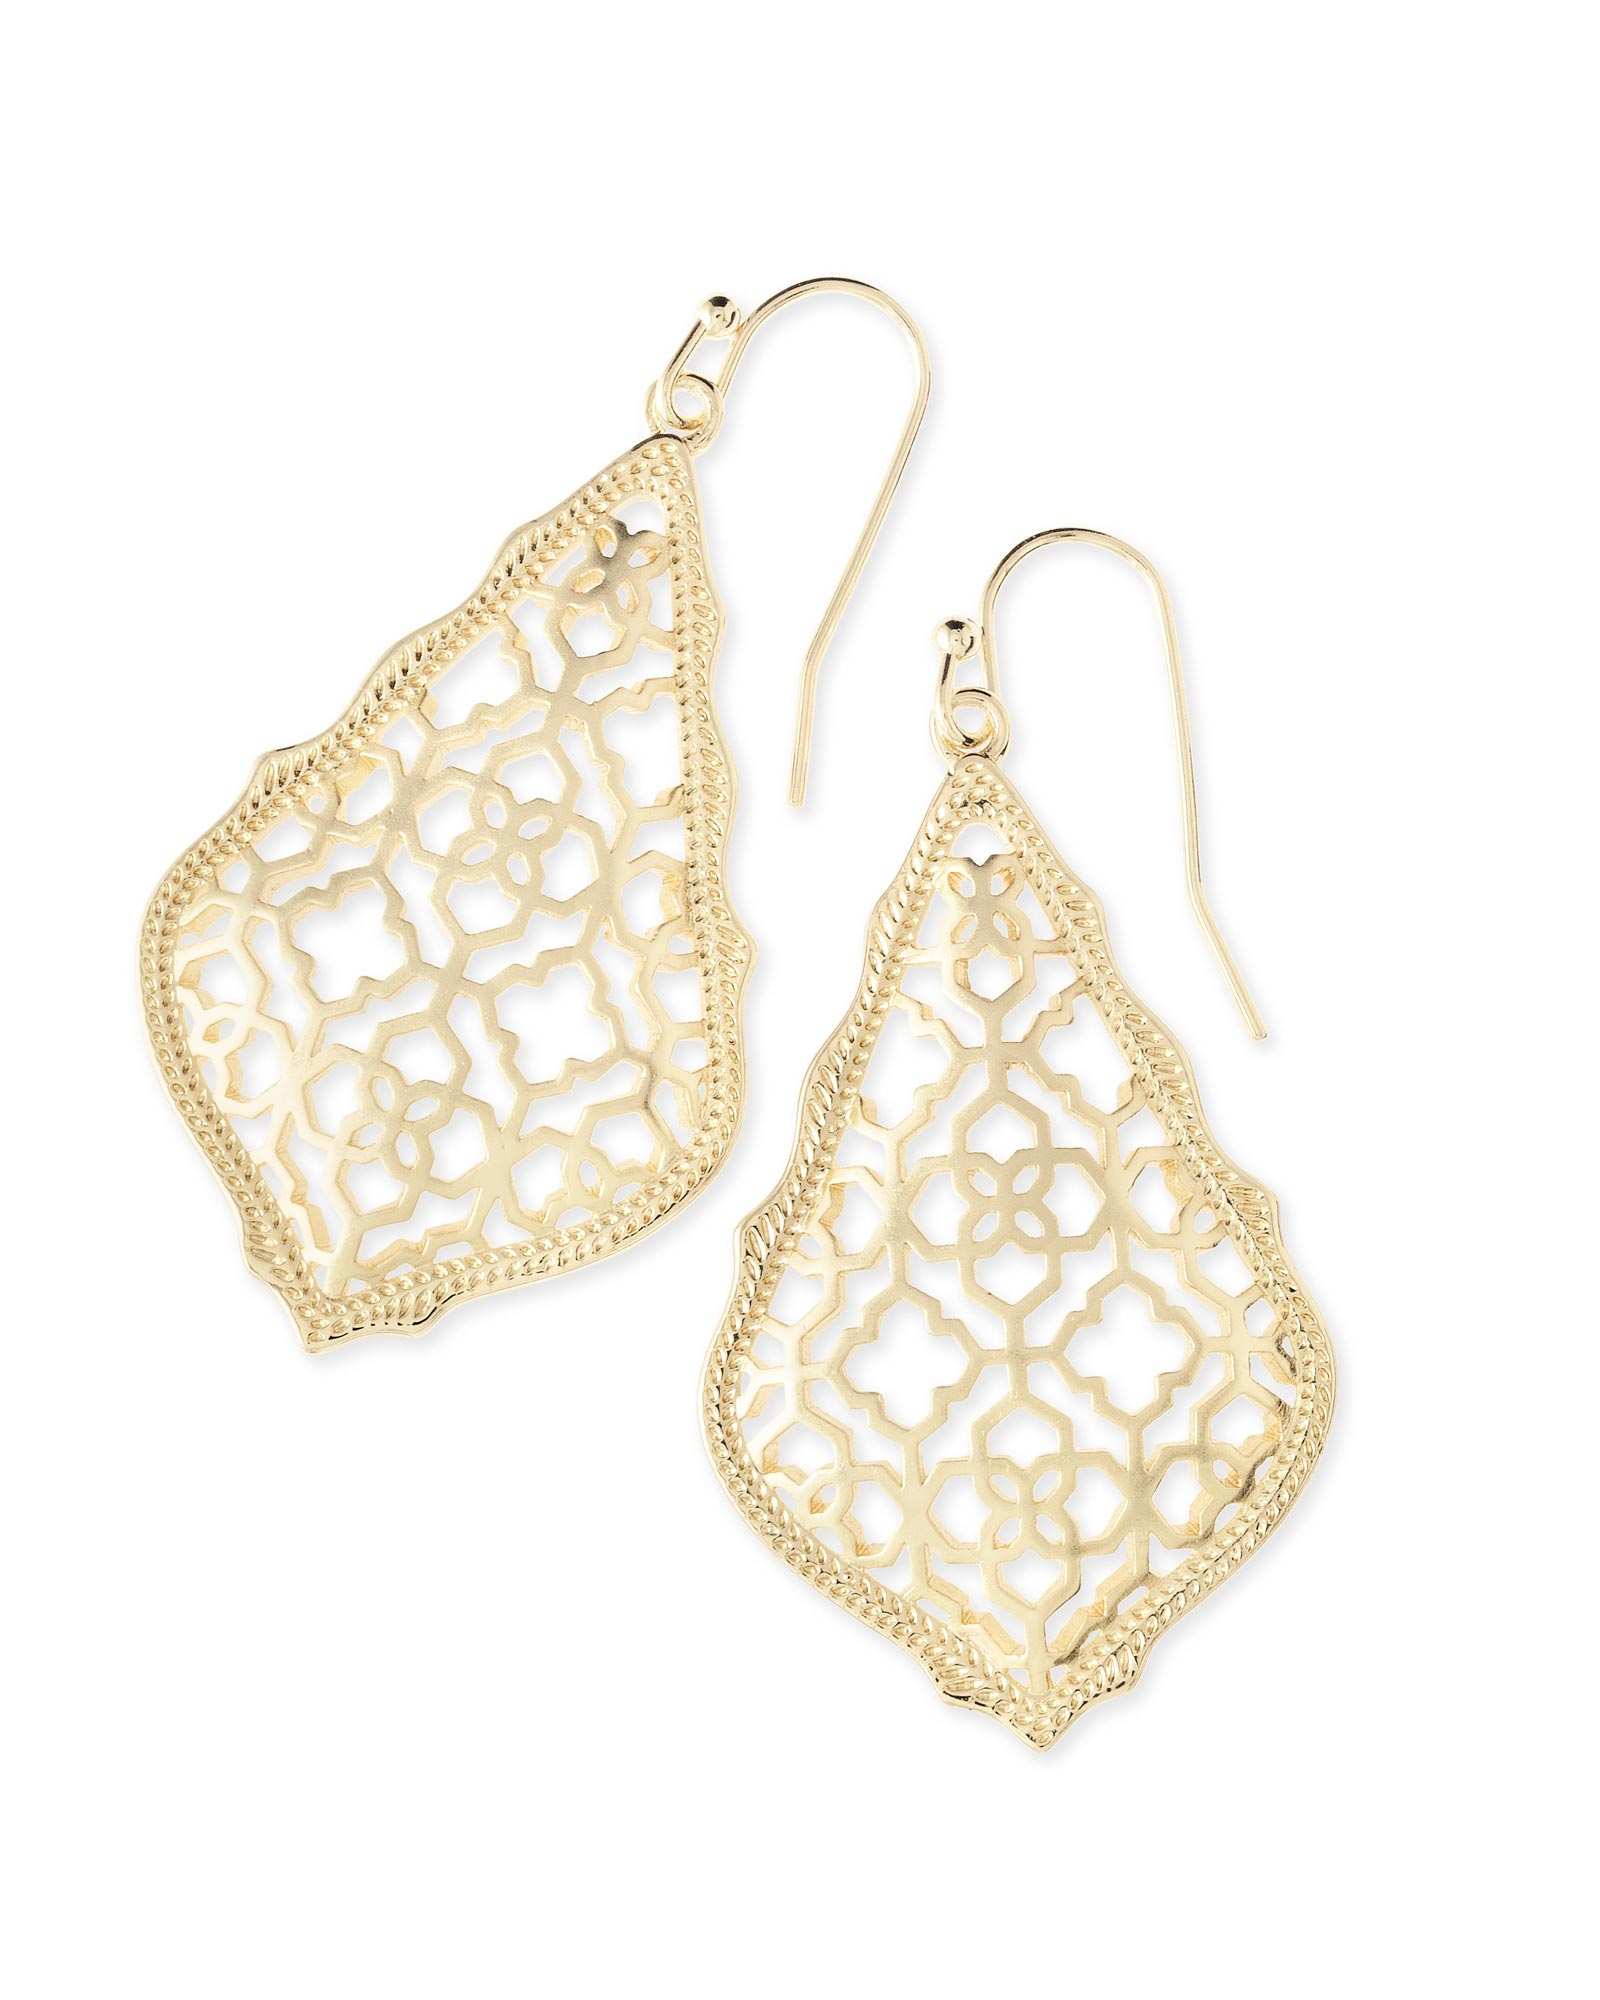 Ad Gold Drop Earrings In Filigree Mix